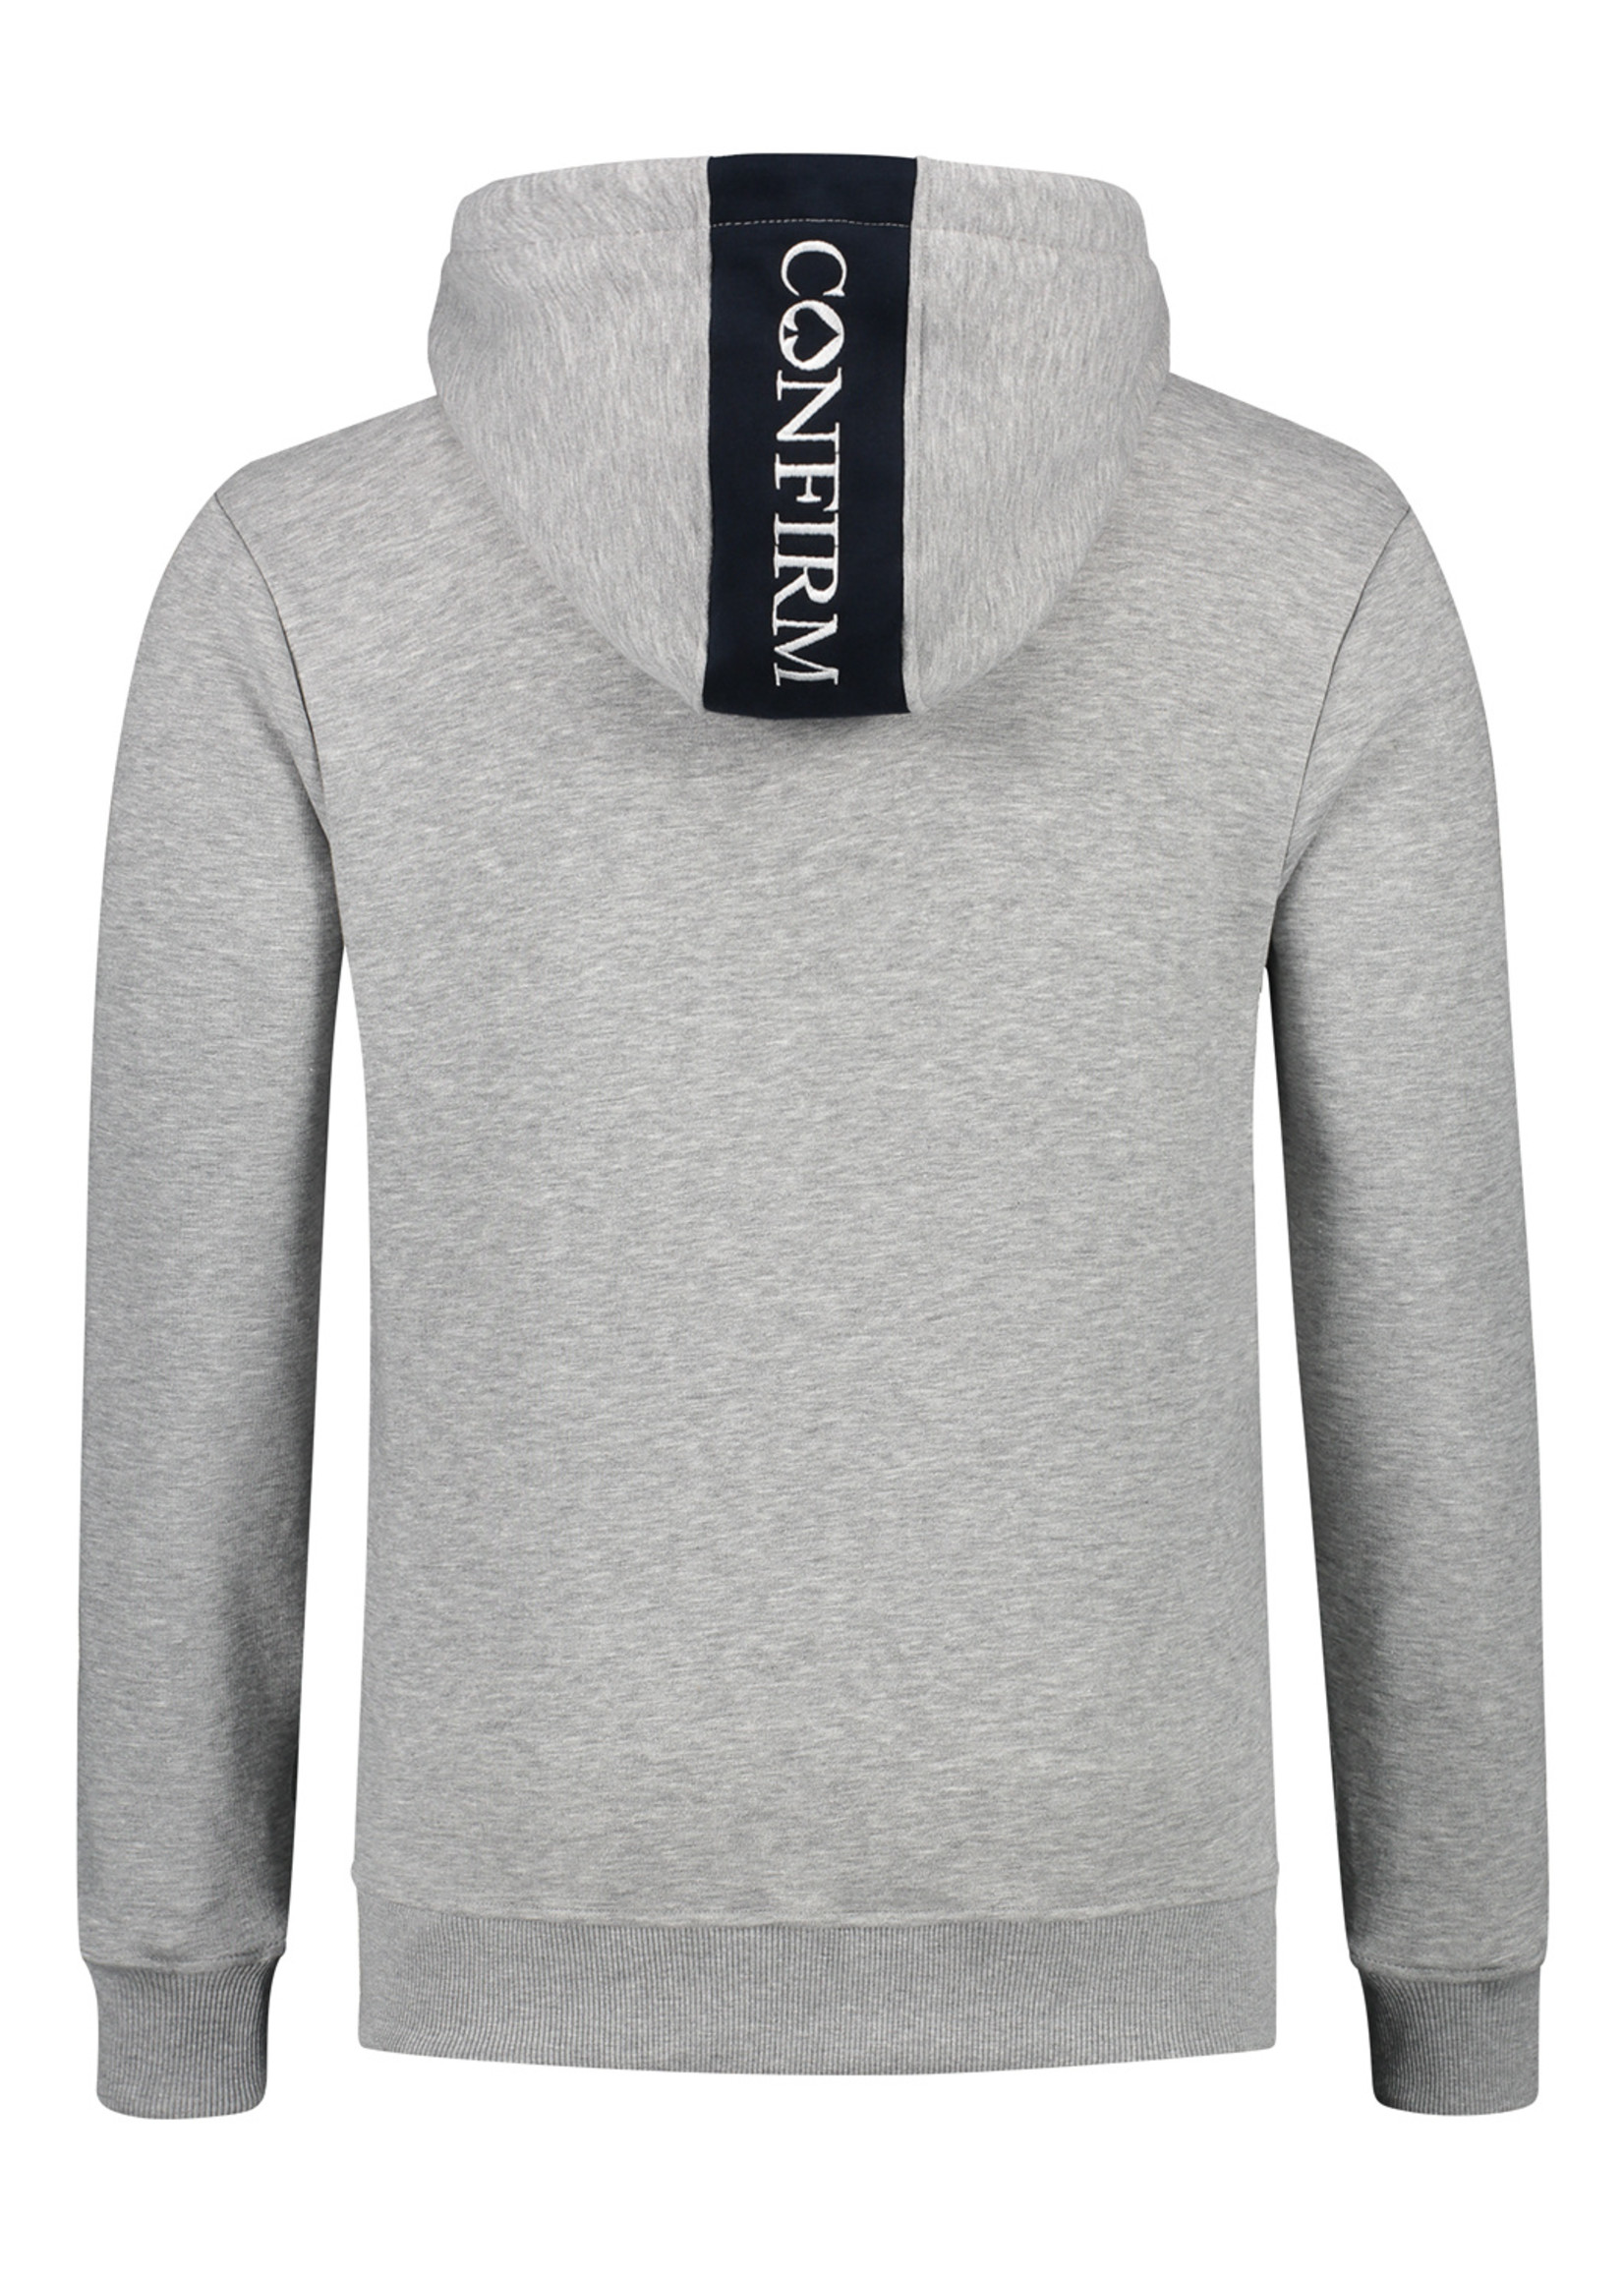 Confirm hoodie blind for love - grey